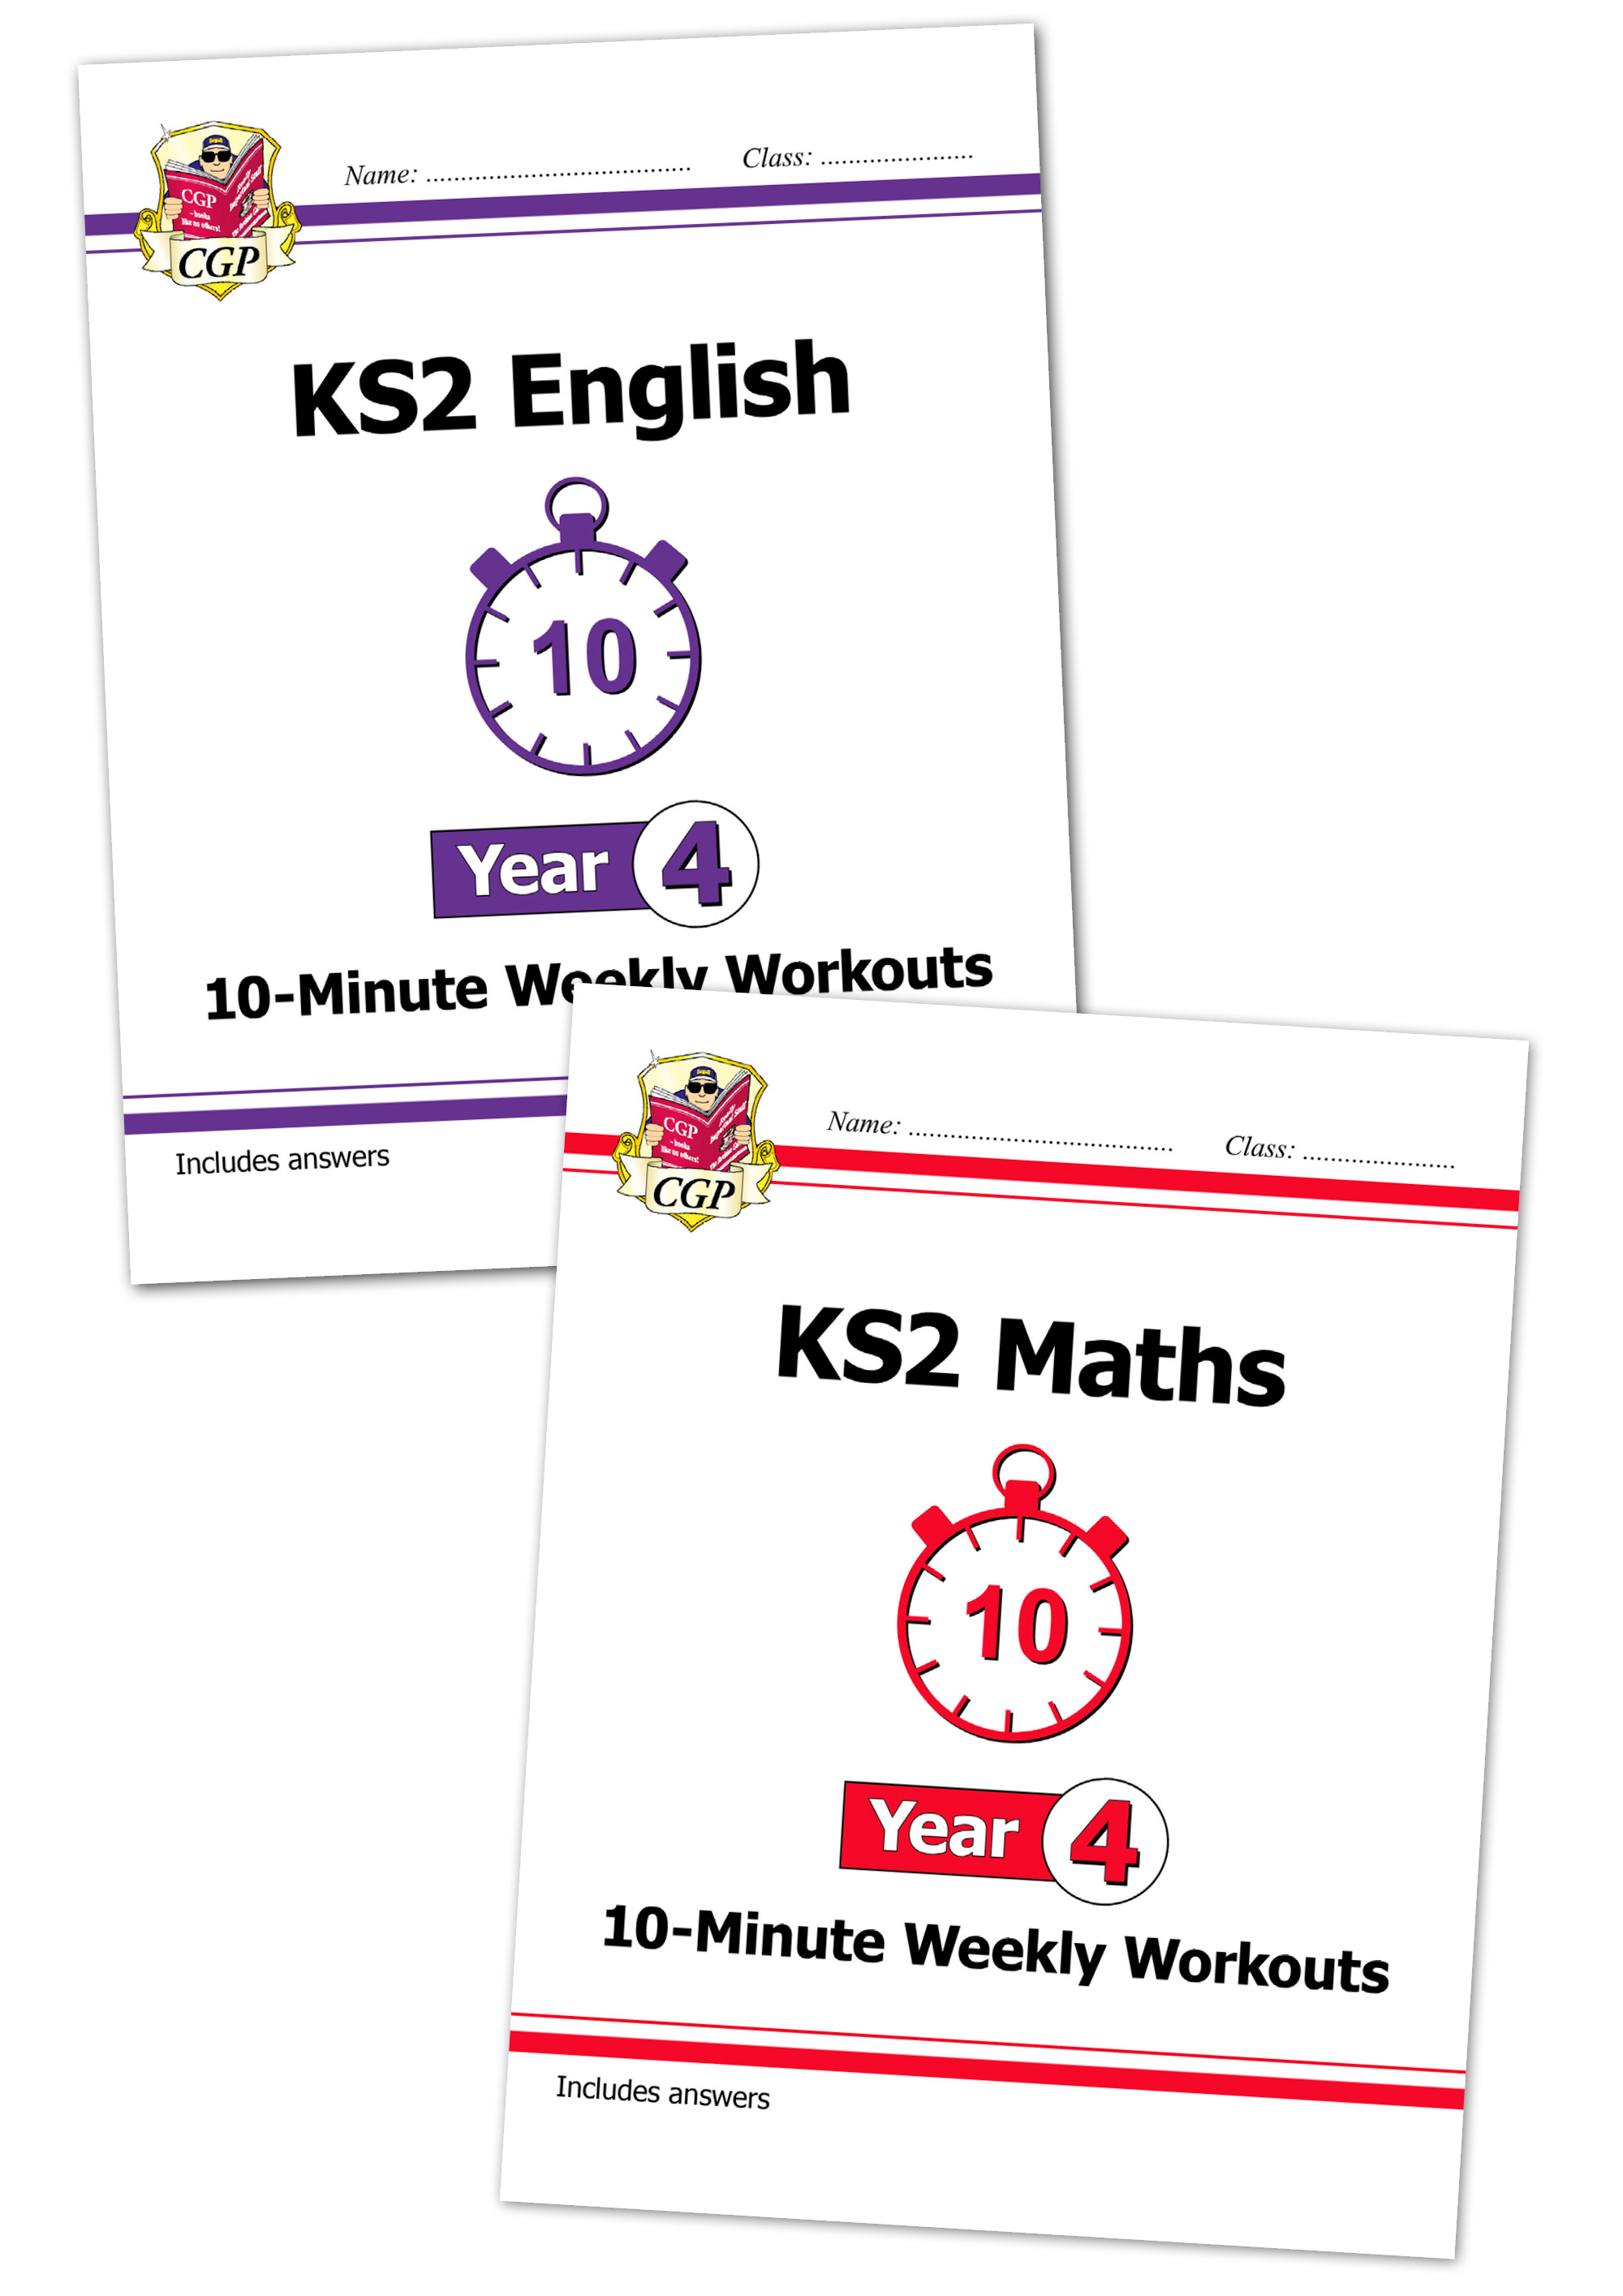 EM4XWB21 - KS2 Maths and English 10-Minute Weekly Workouts Bundle - Year 4